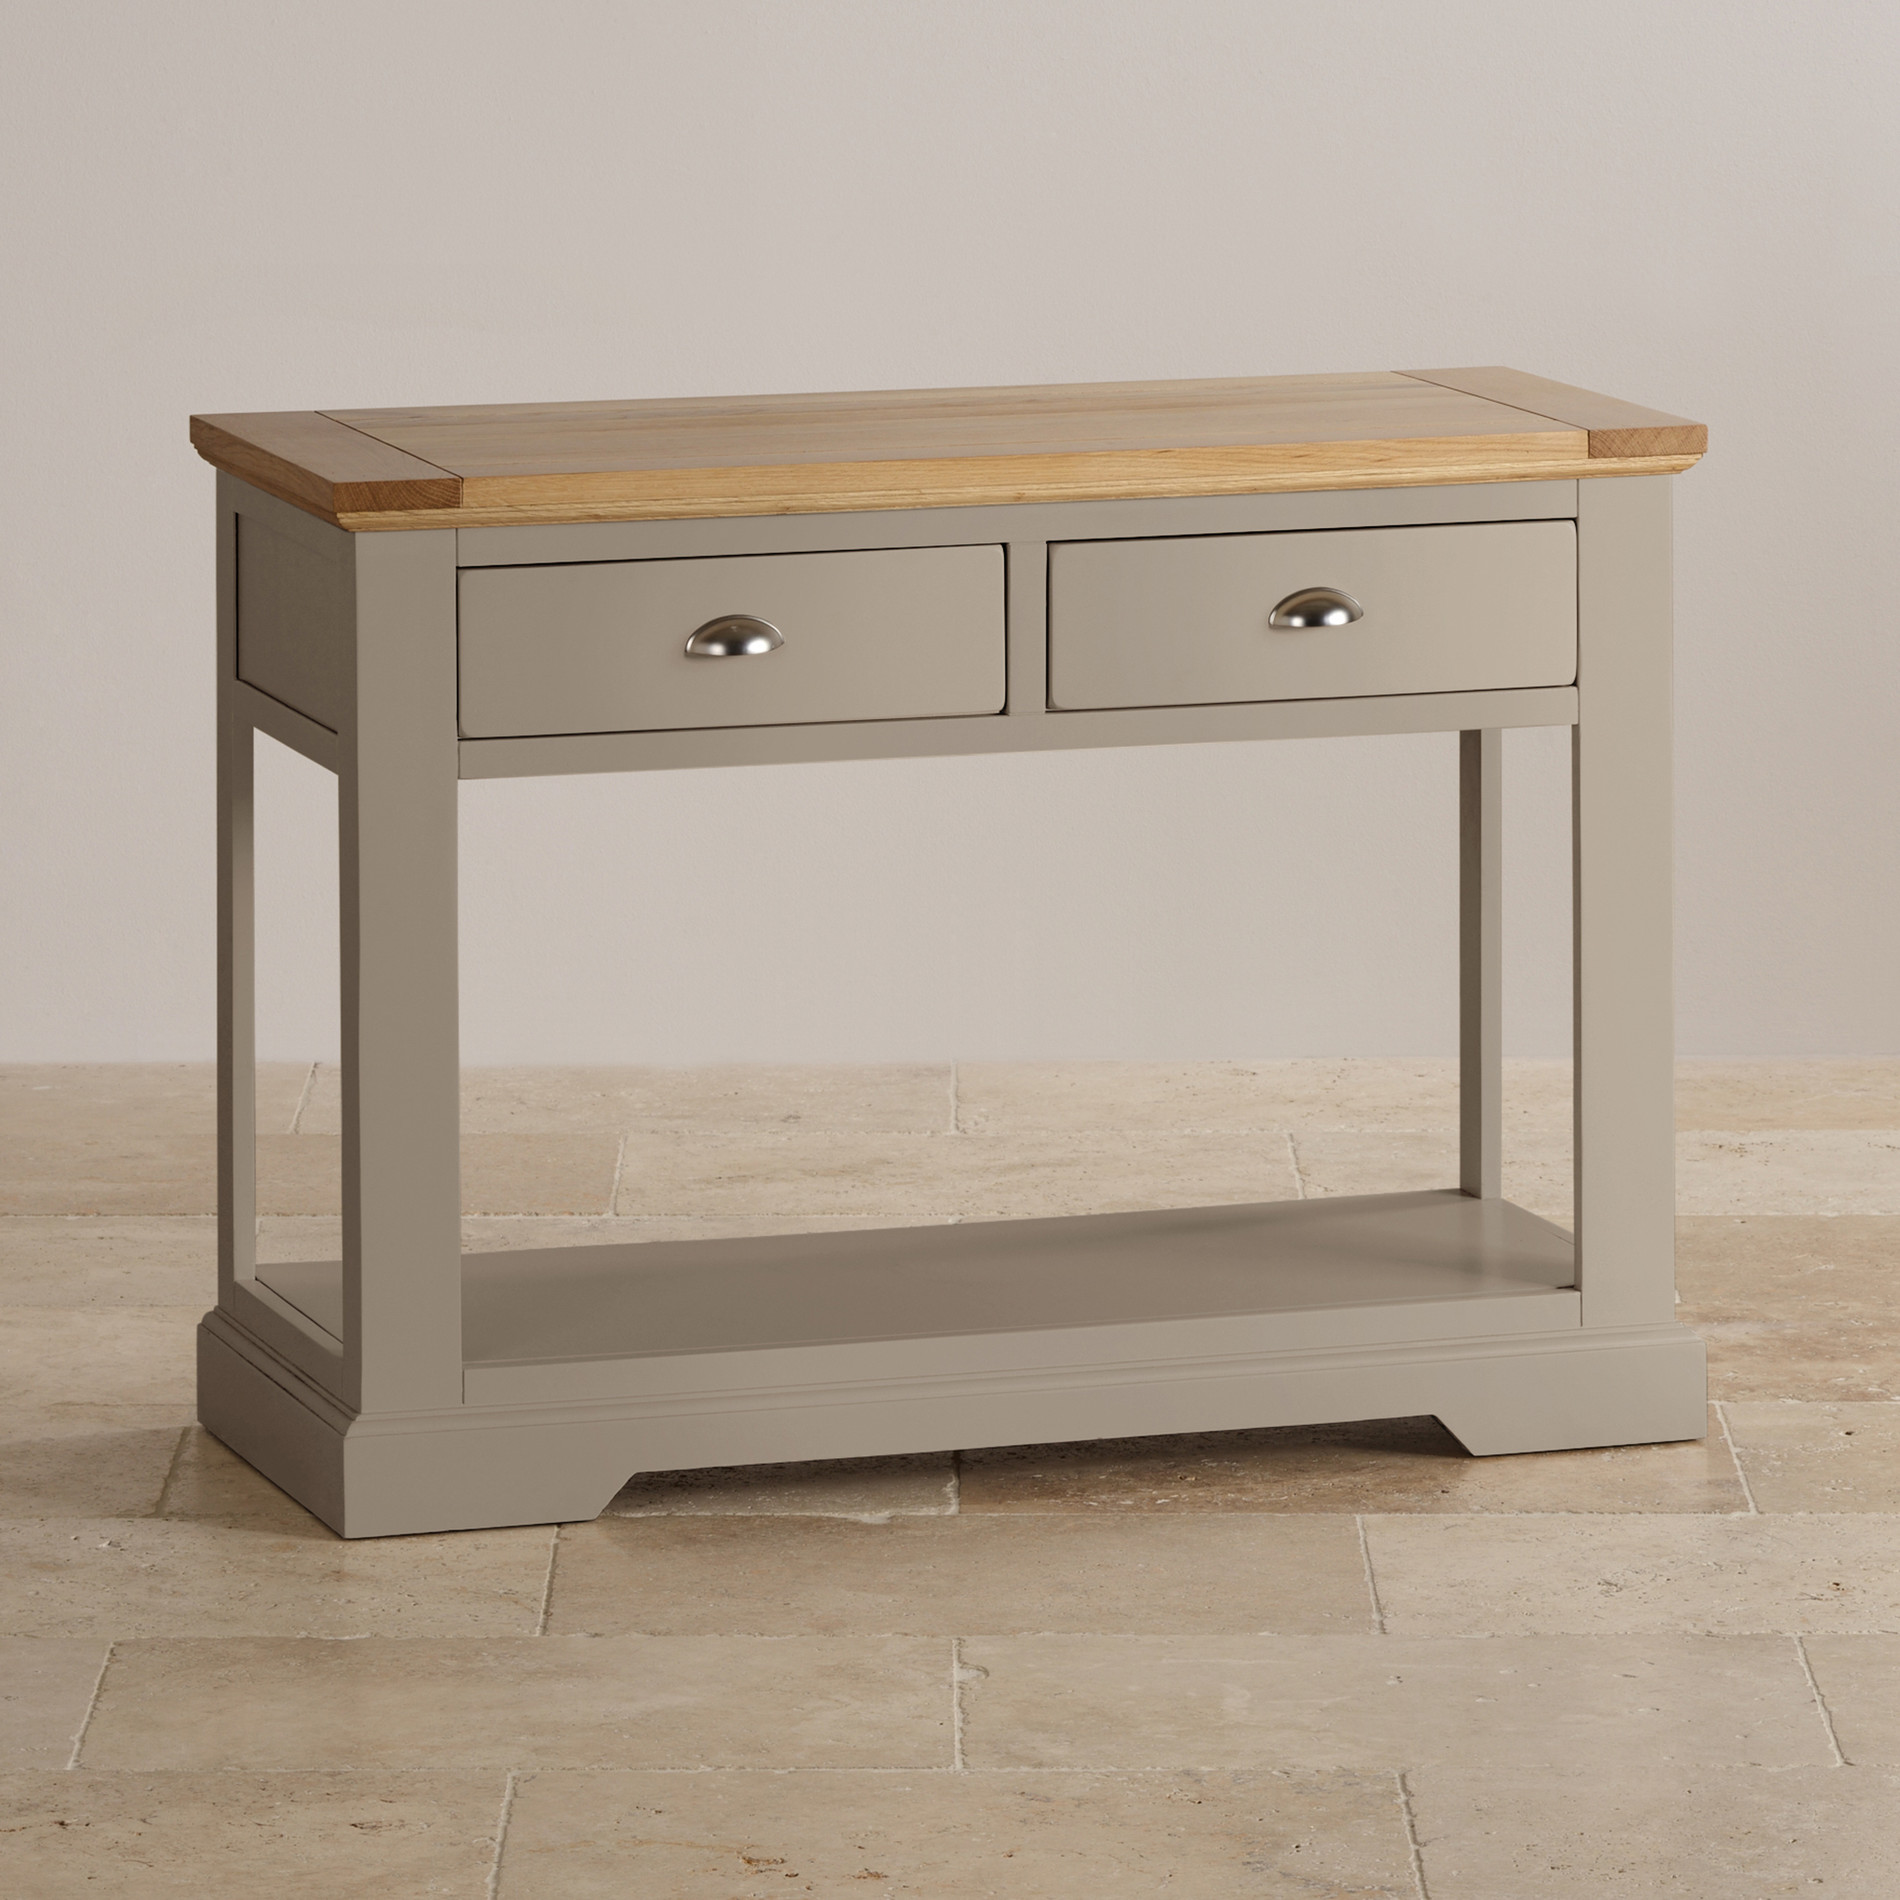 renate gray sofa table steam clean sydney natural oak and light grey painted console